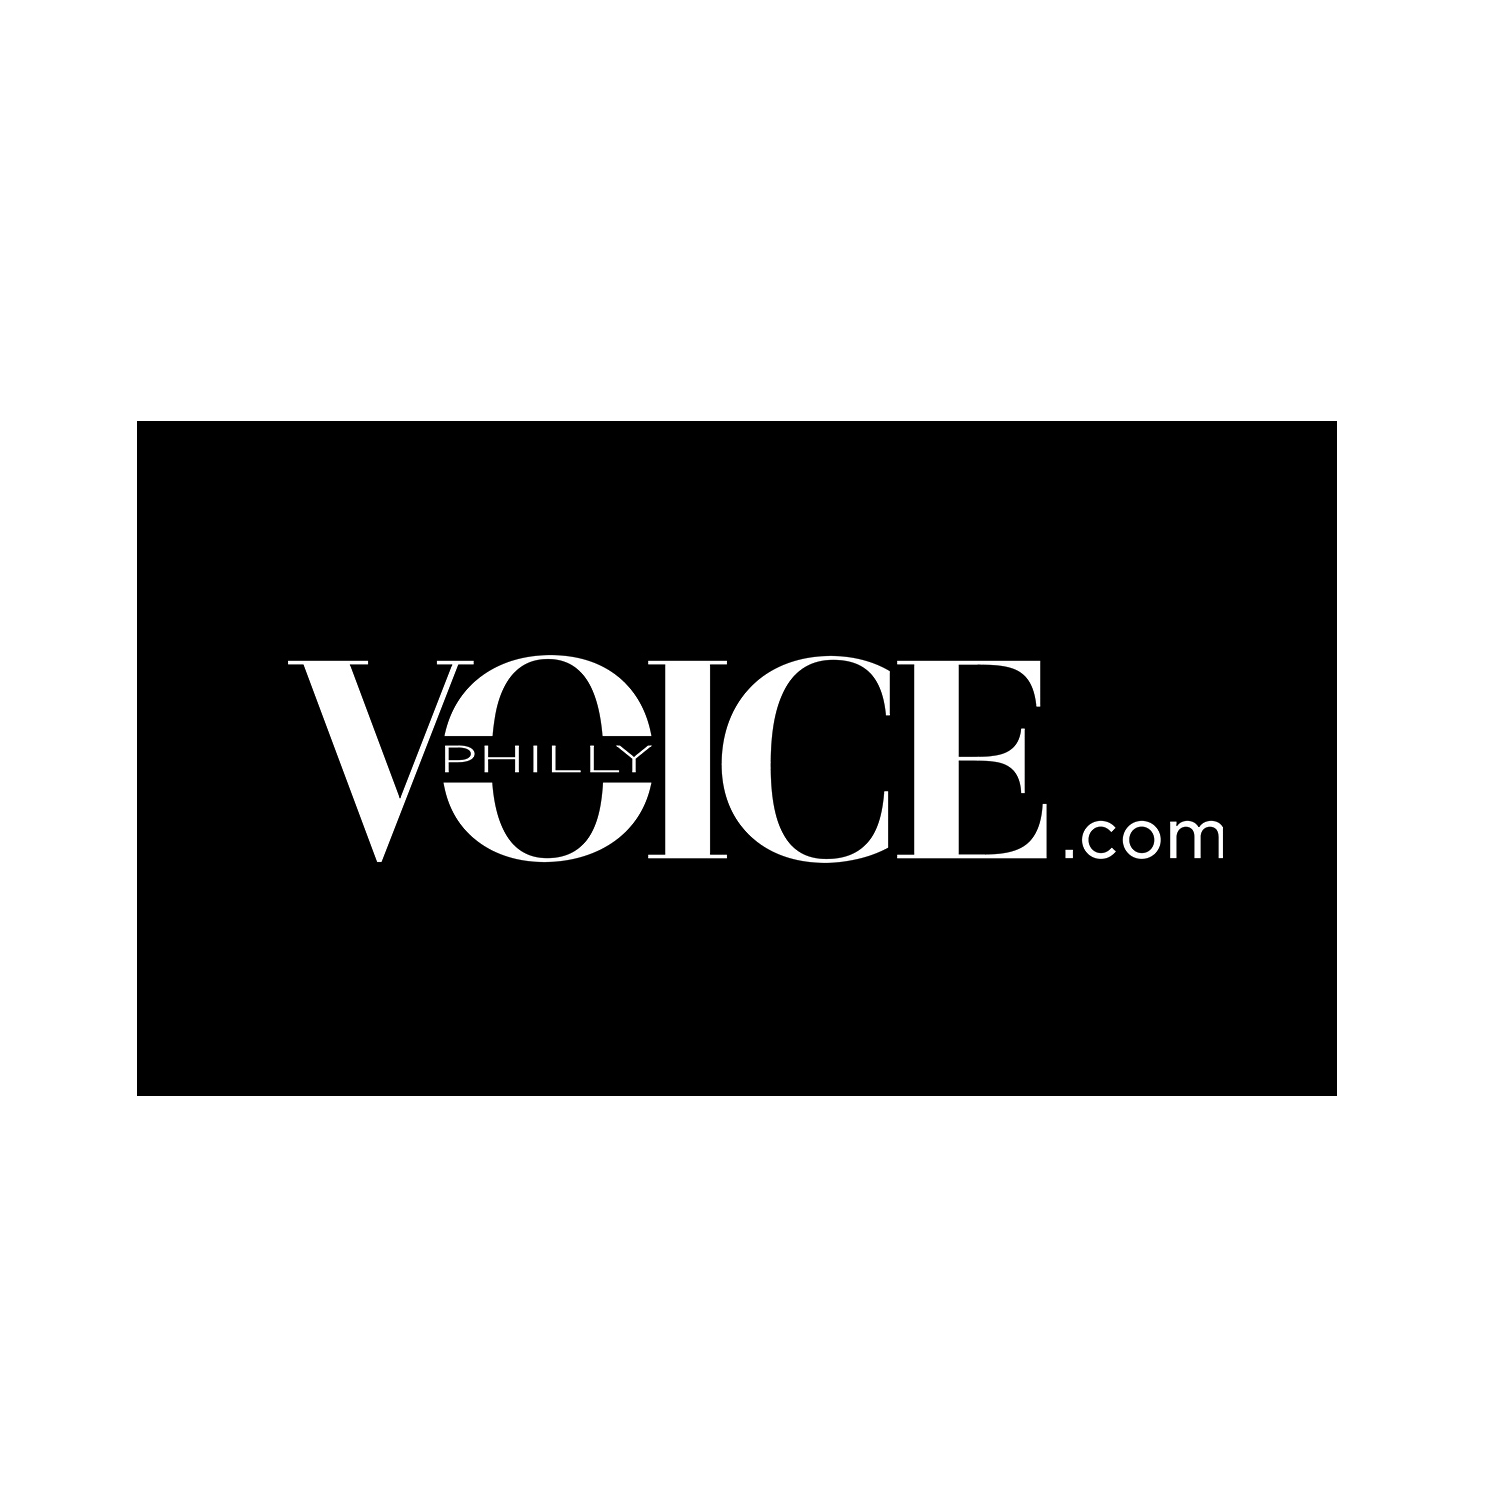 The Philly Voice